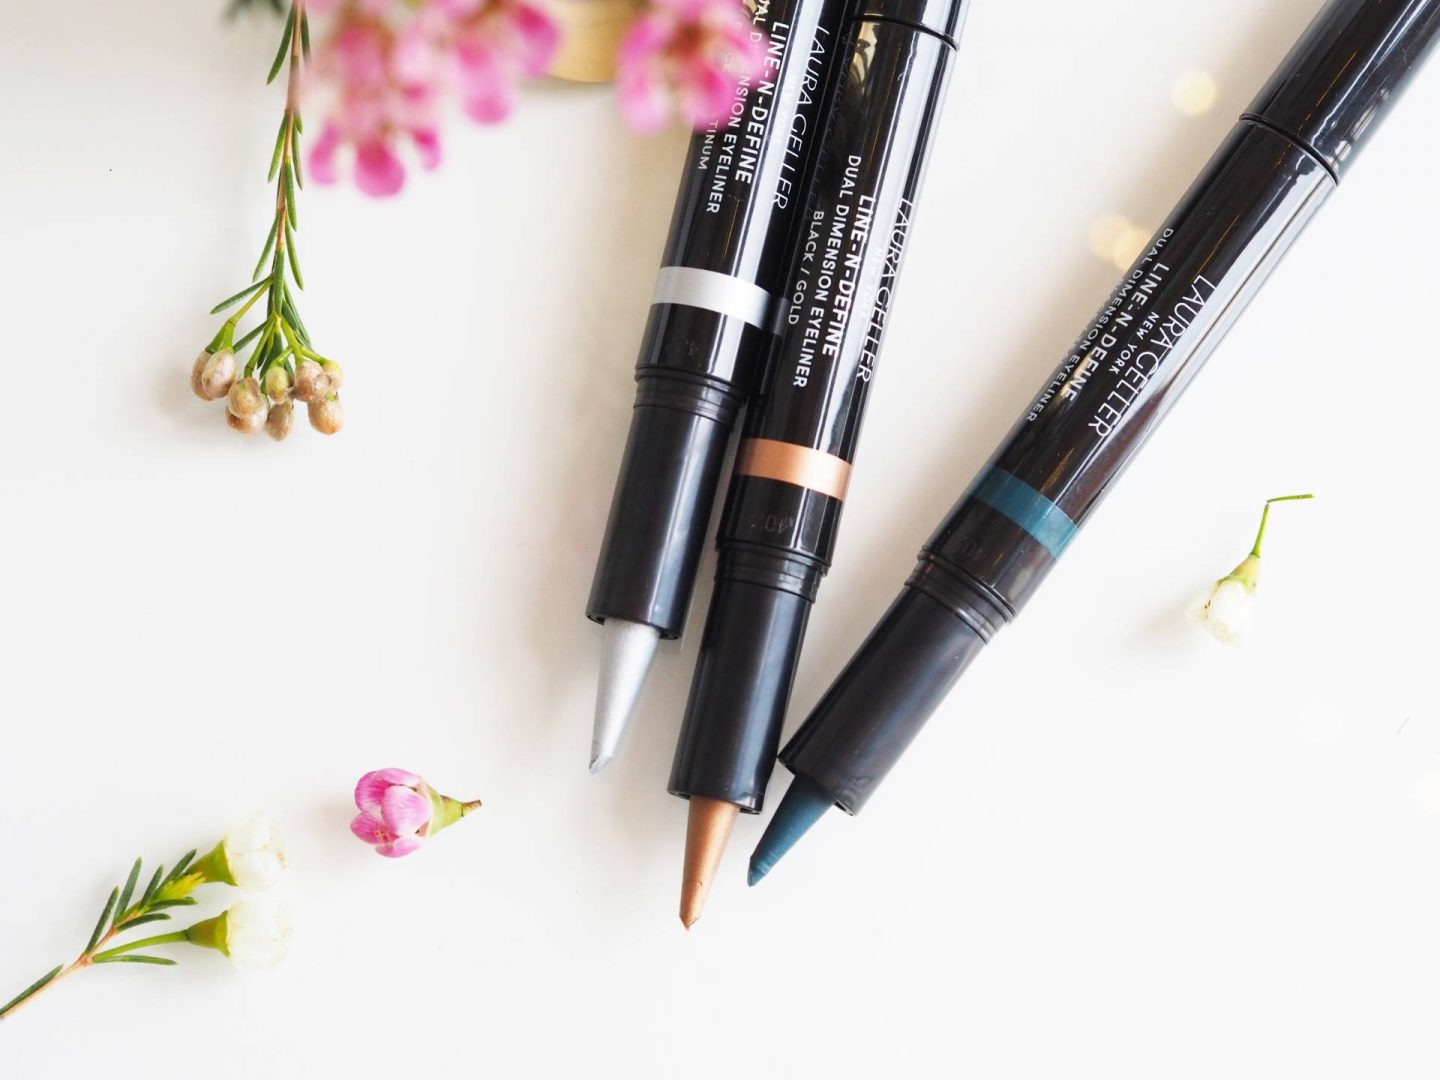 CREAMY EYE LINERS YOU NEED TO TRY